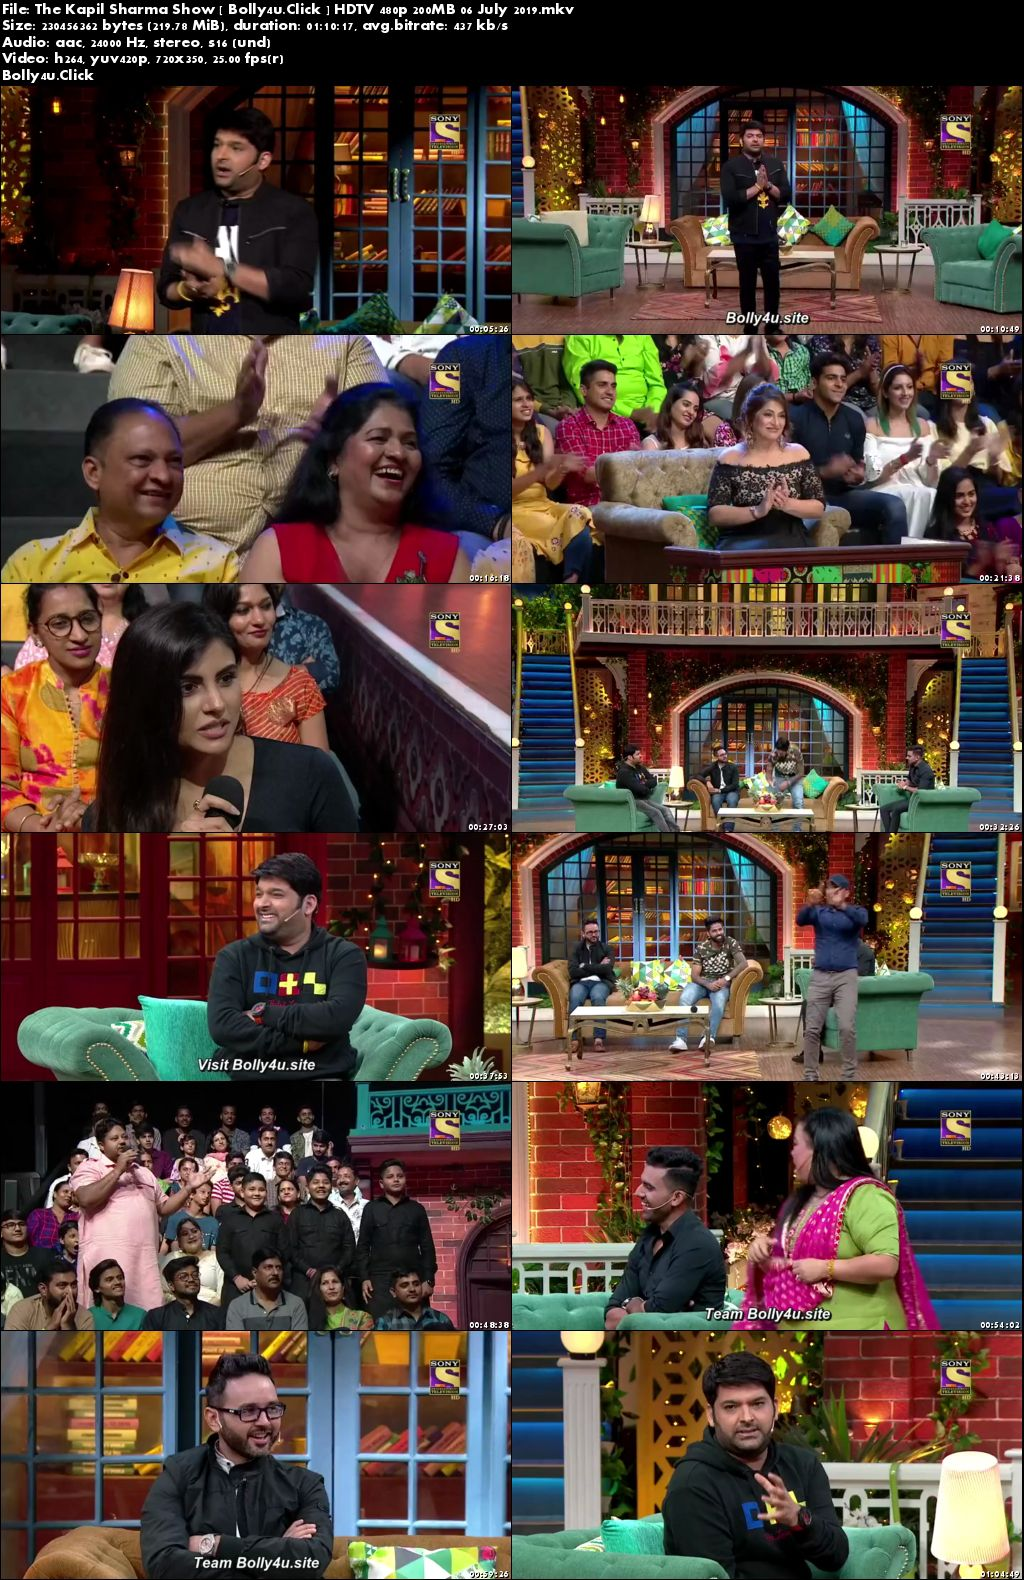 The Kapil Sharma Show HDTV 480p 200MB 06 July 2019 Download